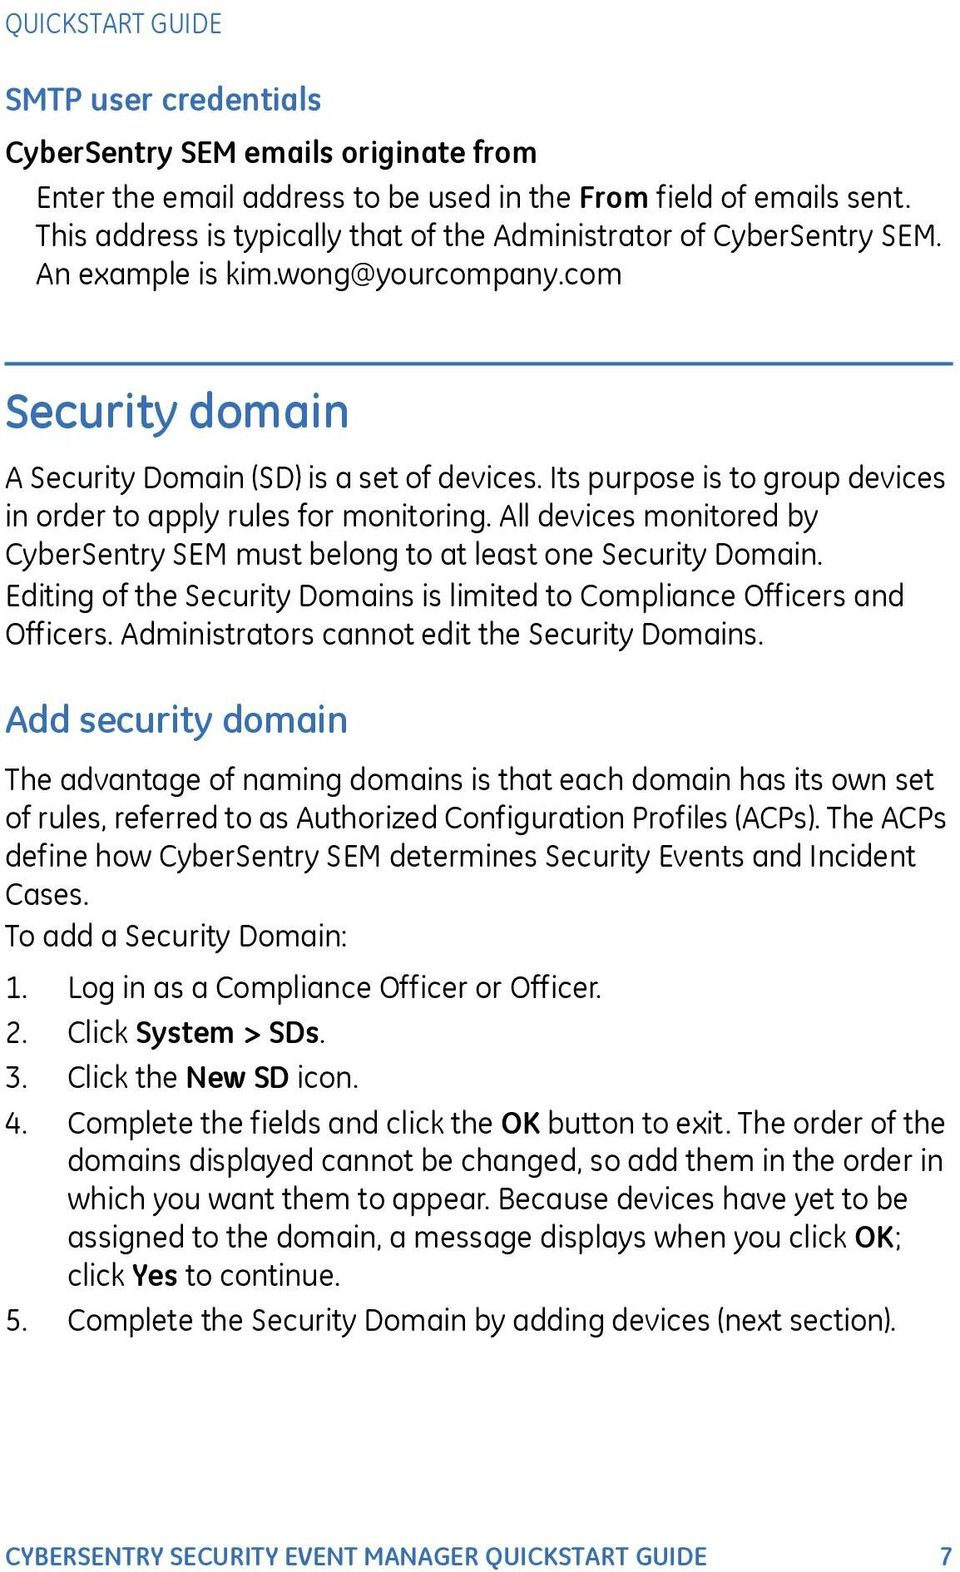 All devices monitored by CyberSentry SEM must belong to at least one Security Domain. Editing of the Security Domains is limited to Compliance Officers and Officers.